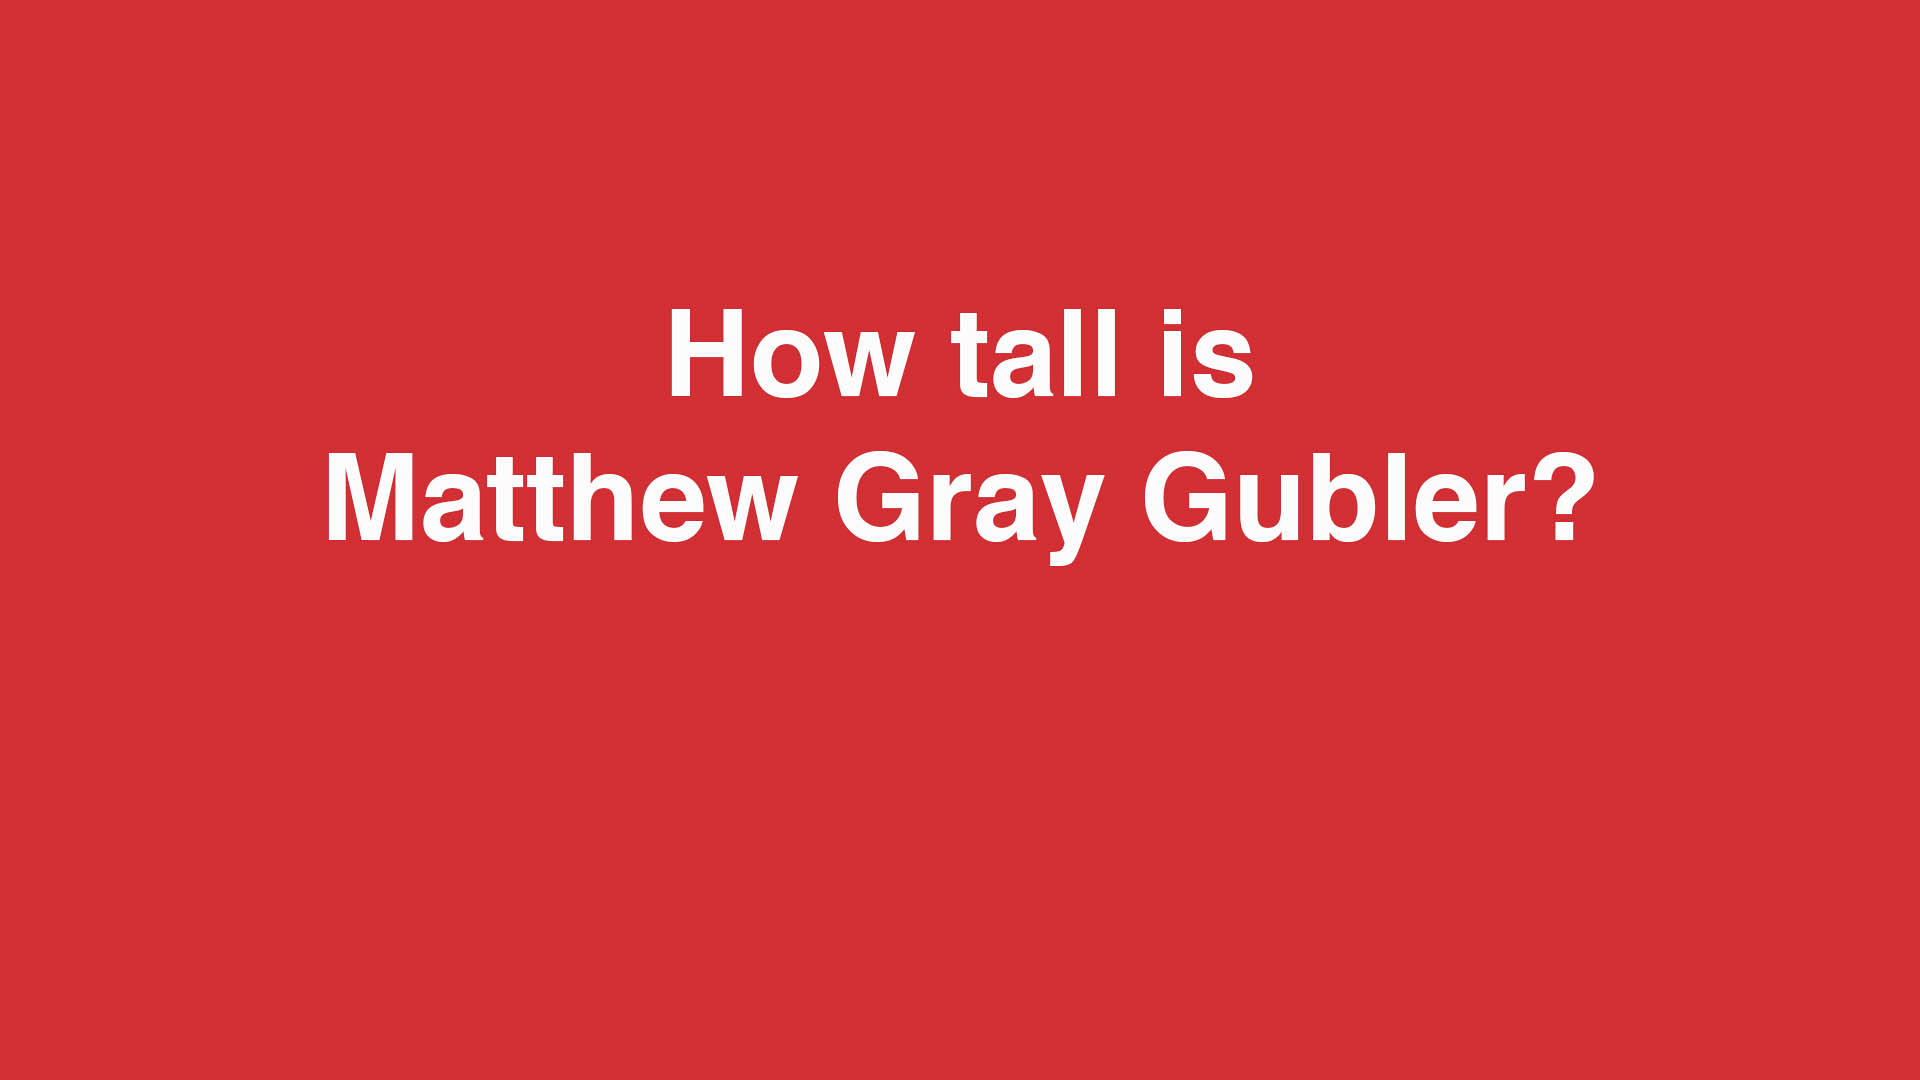 How tall is Matthew Gray Gubler?